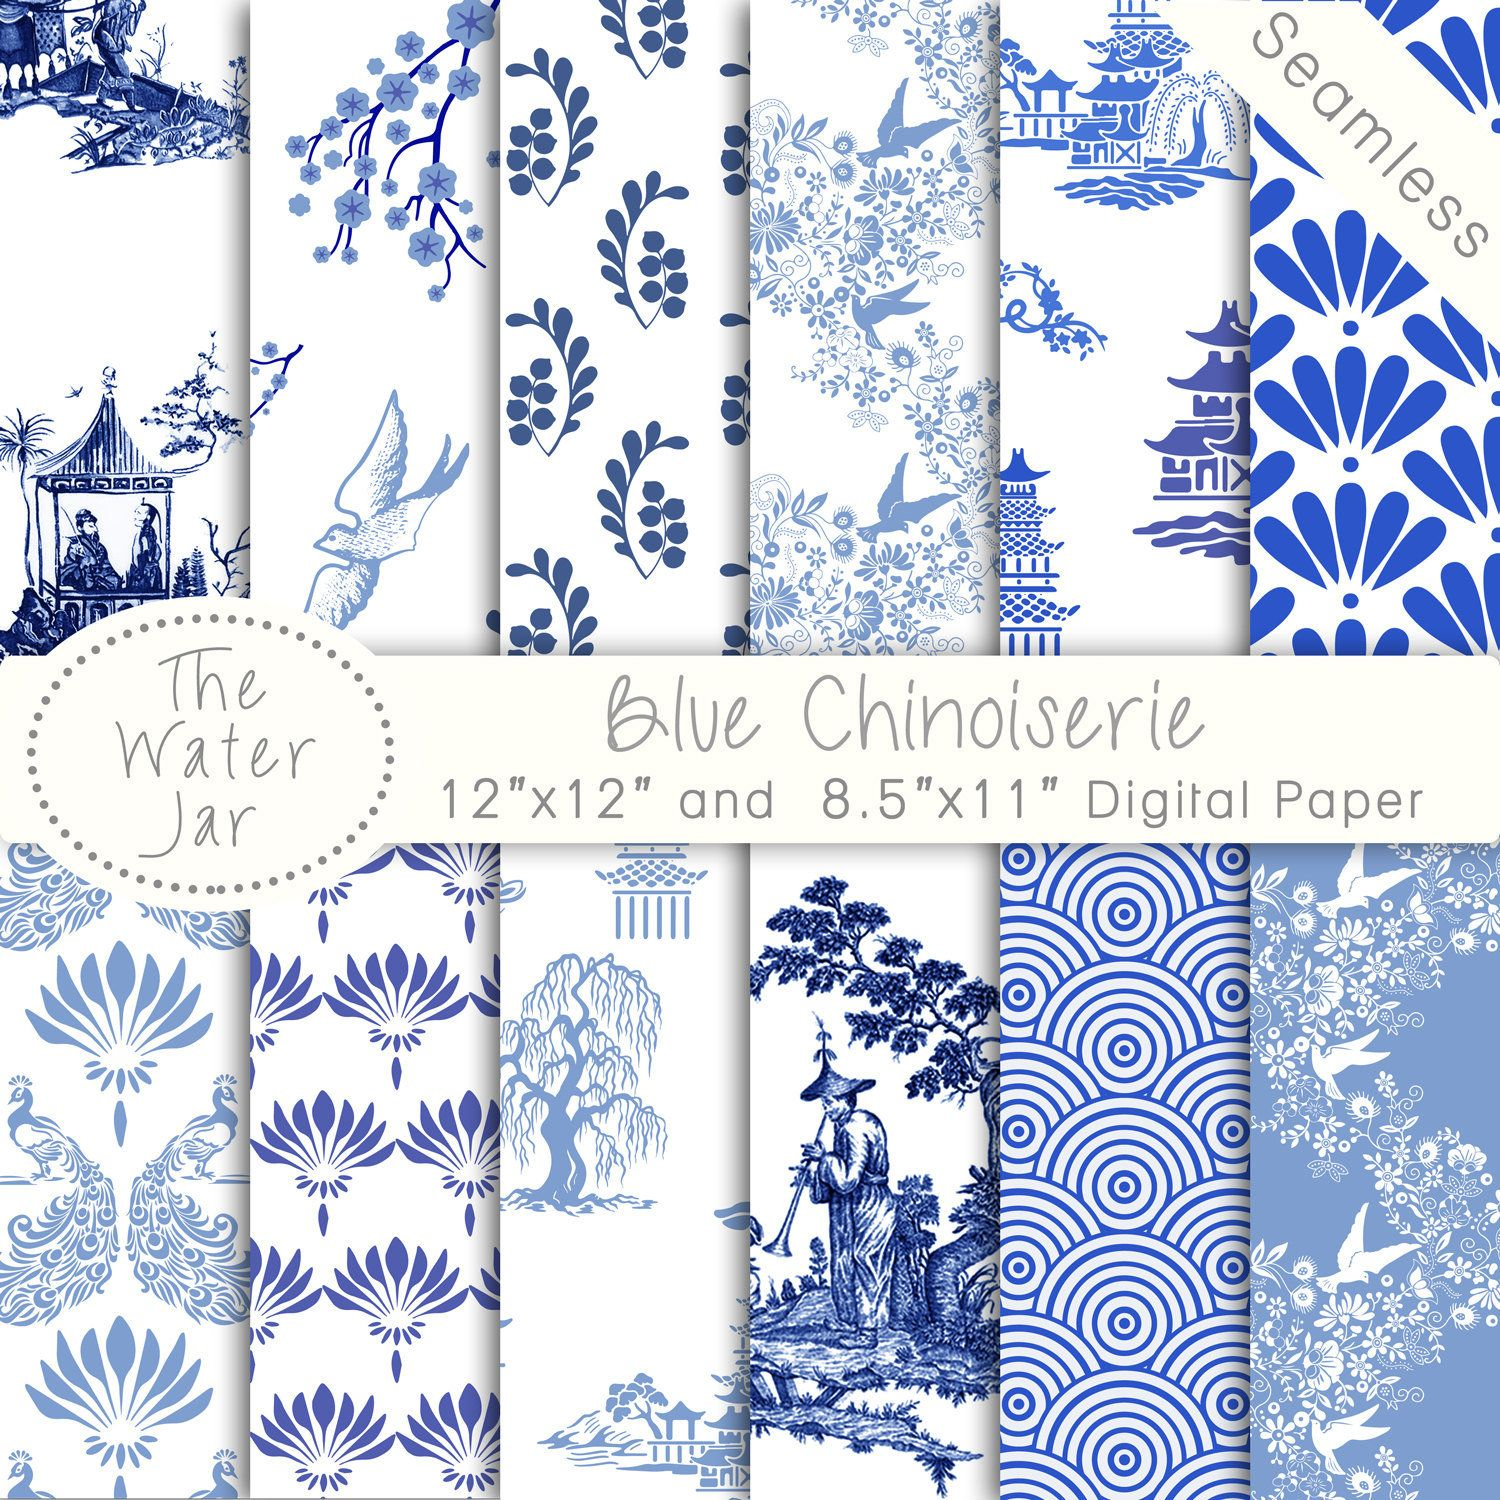 Pin By Stacy Theresa On Pattern Graphics Designs Blue And White Wallpaper Chinoiserie Wallpaper Chinese Patterns